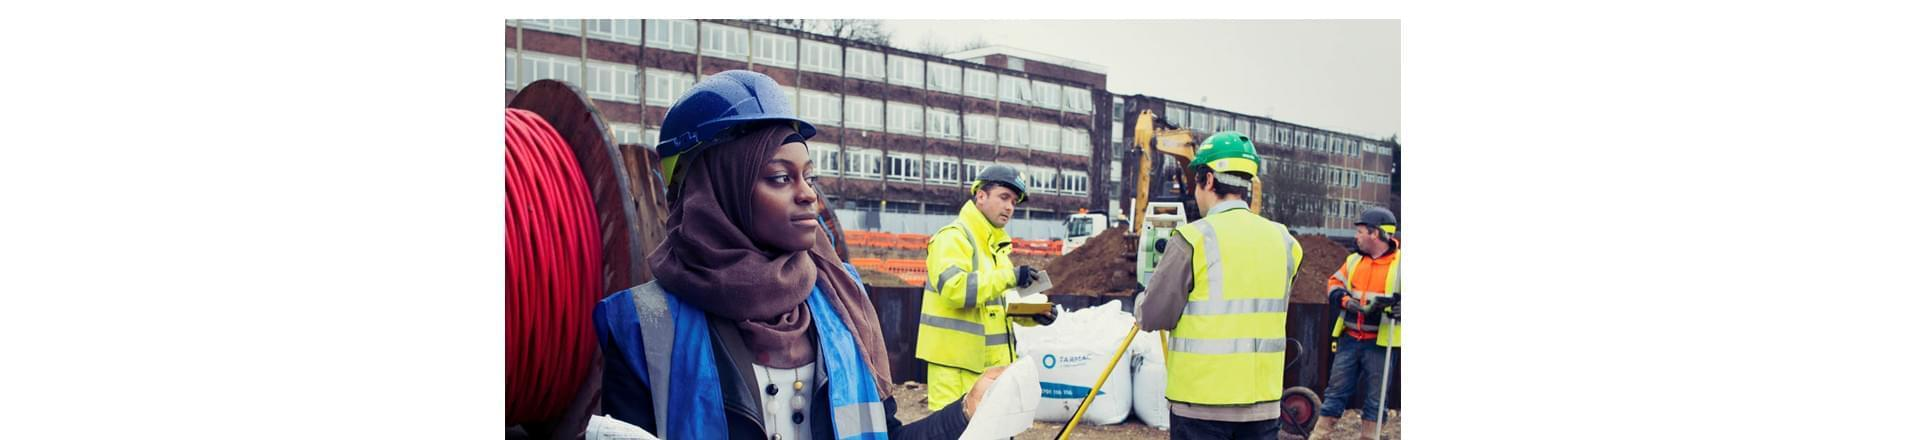 Fauzia on the building site in head scarf and protective headwear holding a plastic bag